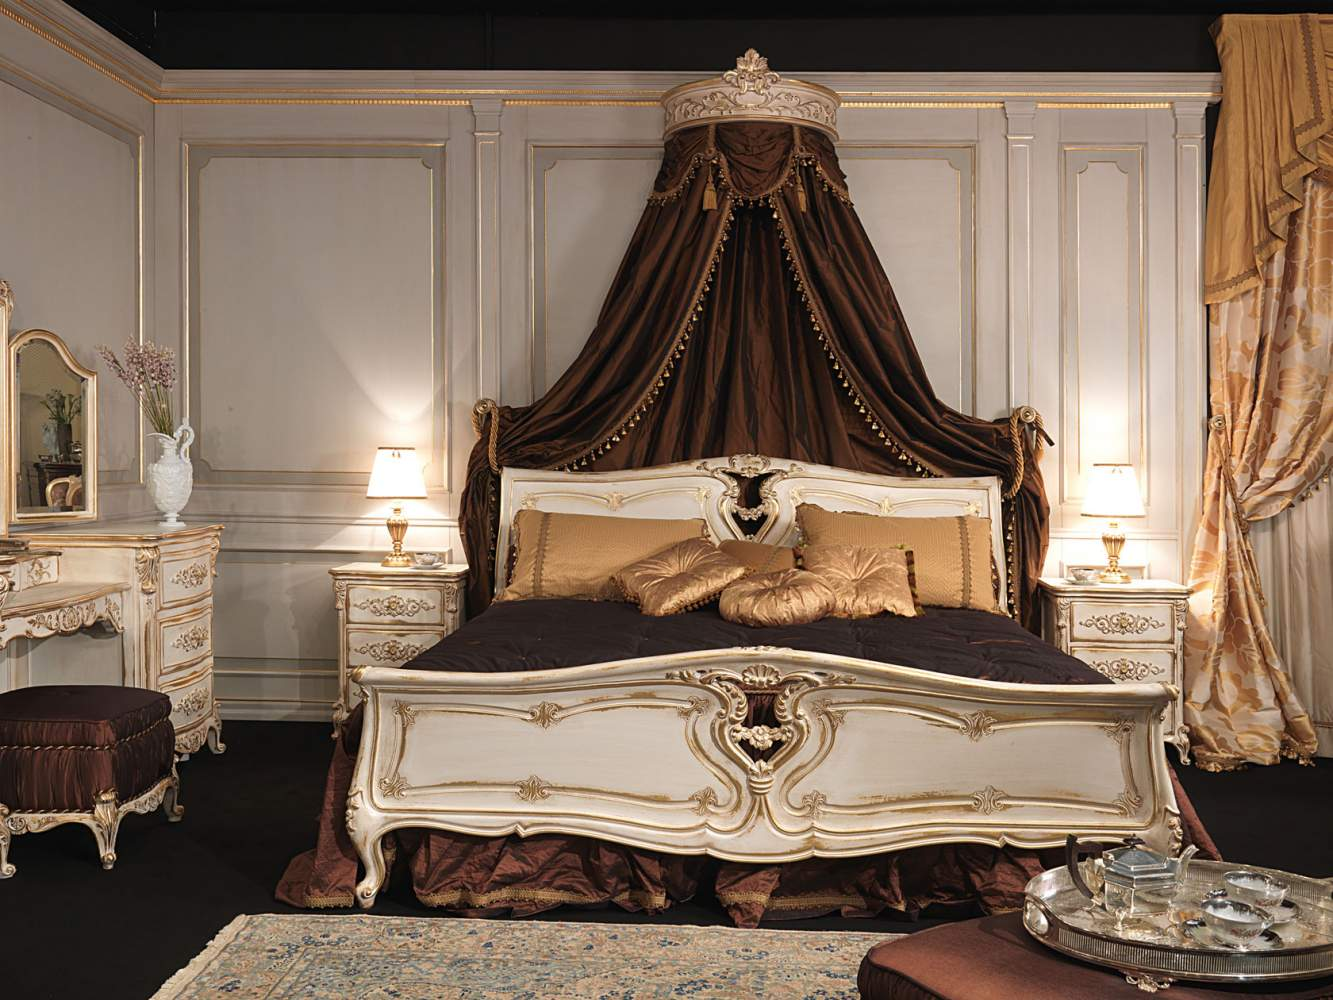 Classic Louis XVI bedroom, carved wood bed with wall baldaquin, carved night tables